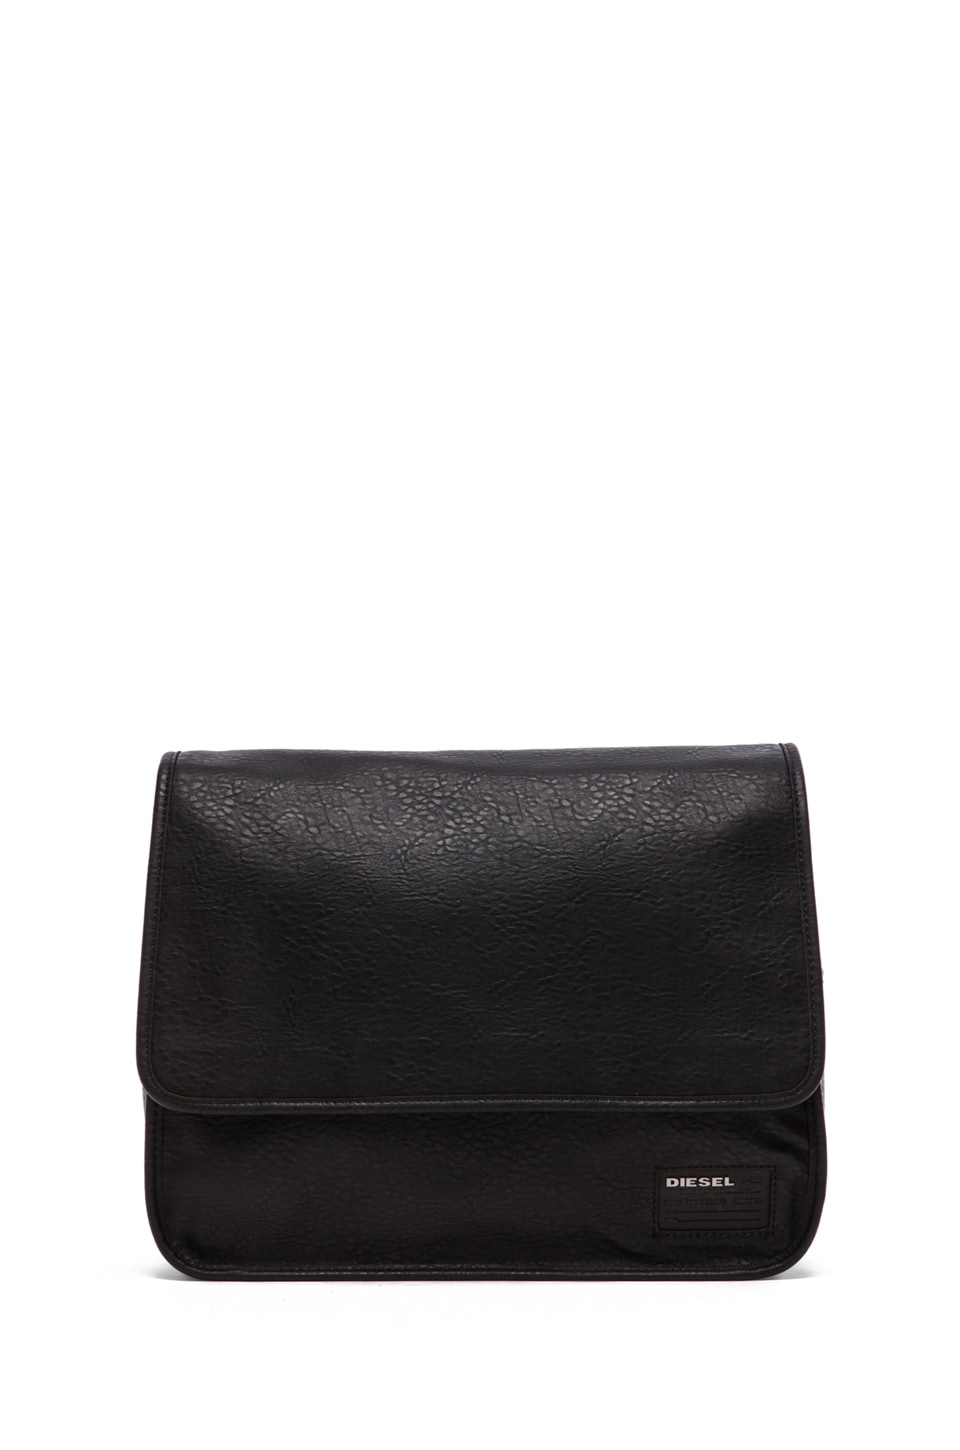 Diesel City to the Core City Flap Messenger in Black